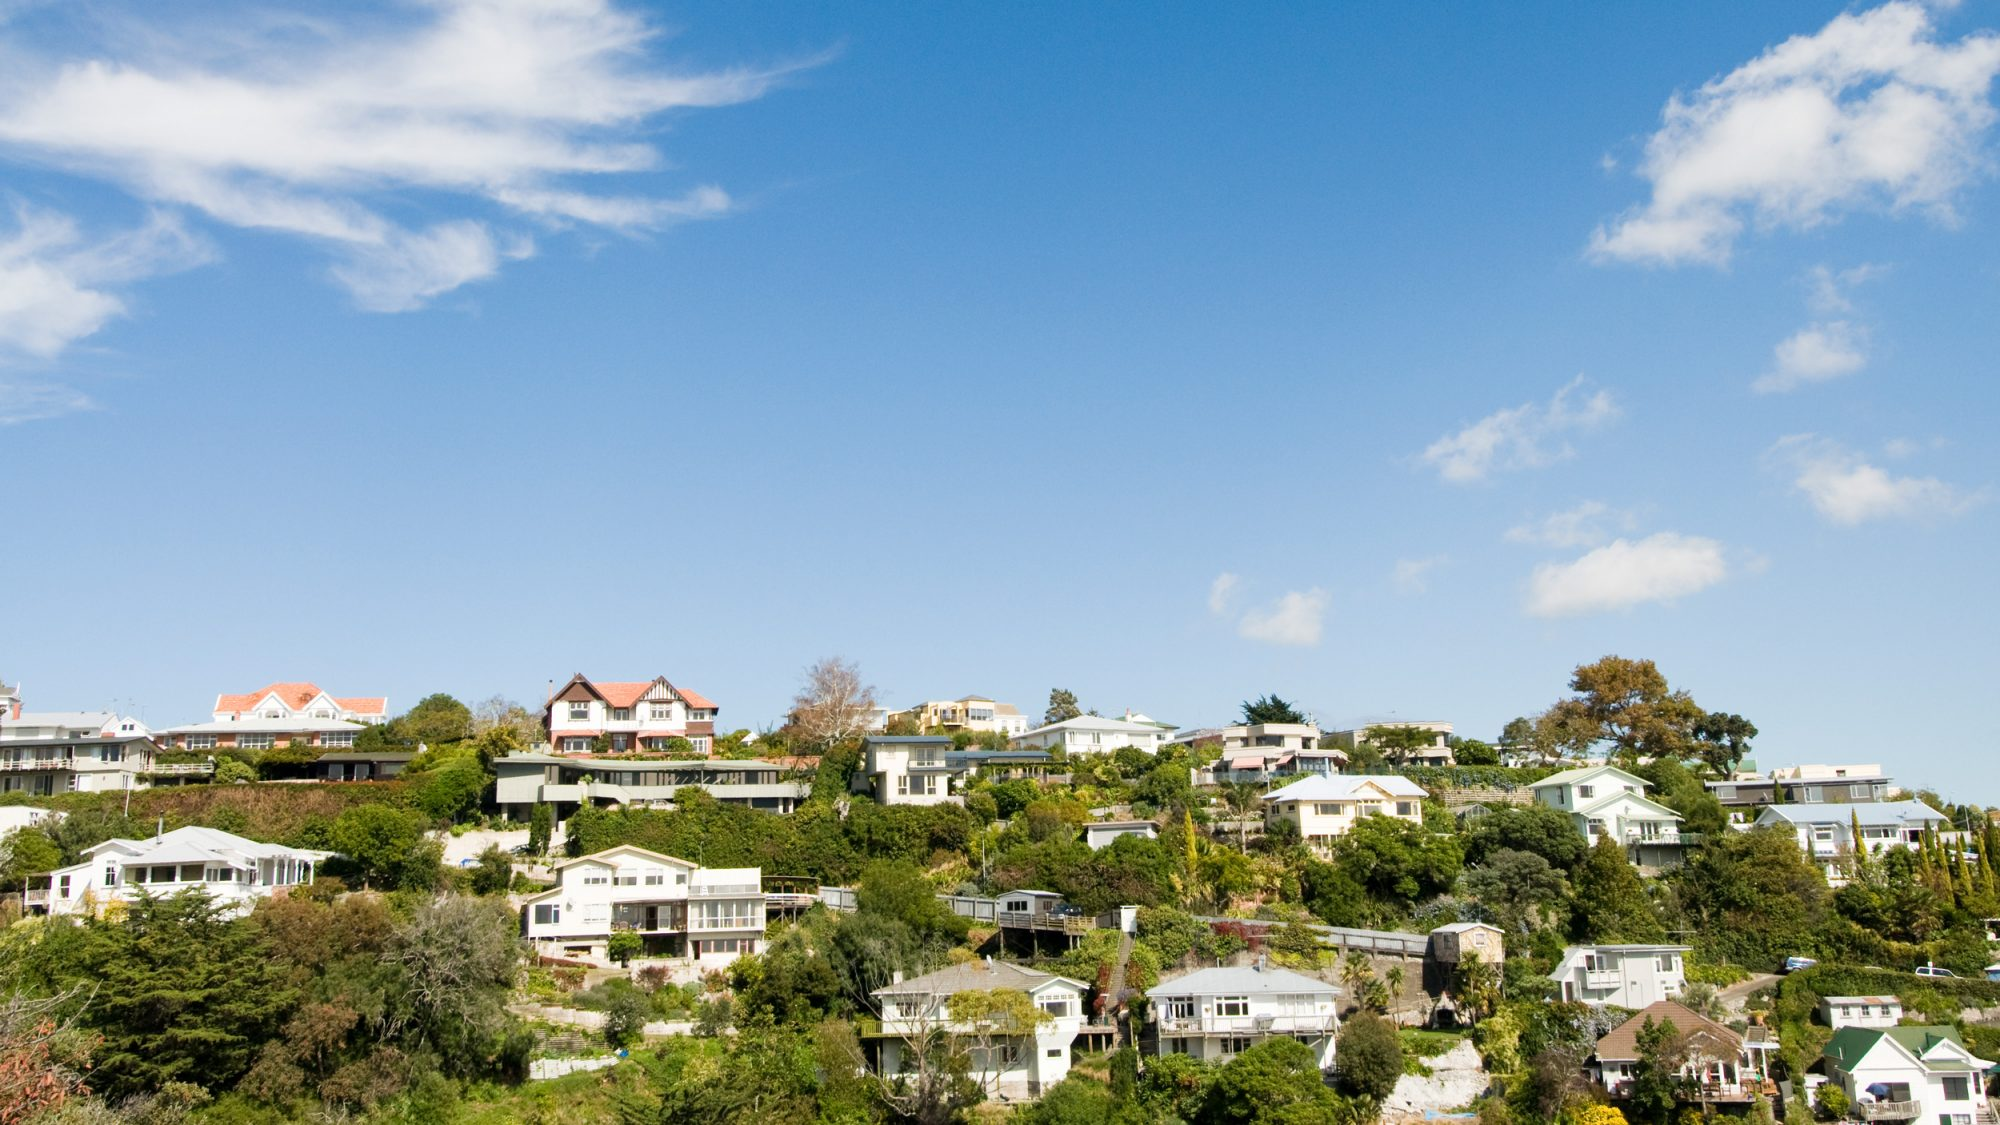 The Rich are Fleeing to New Zealand